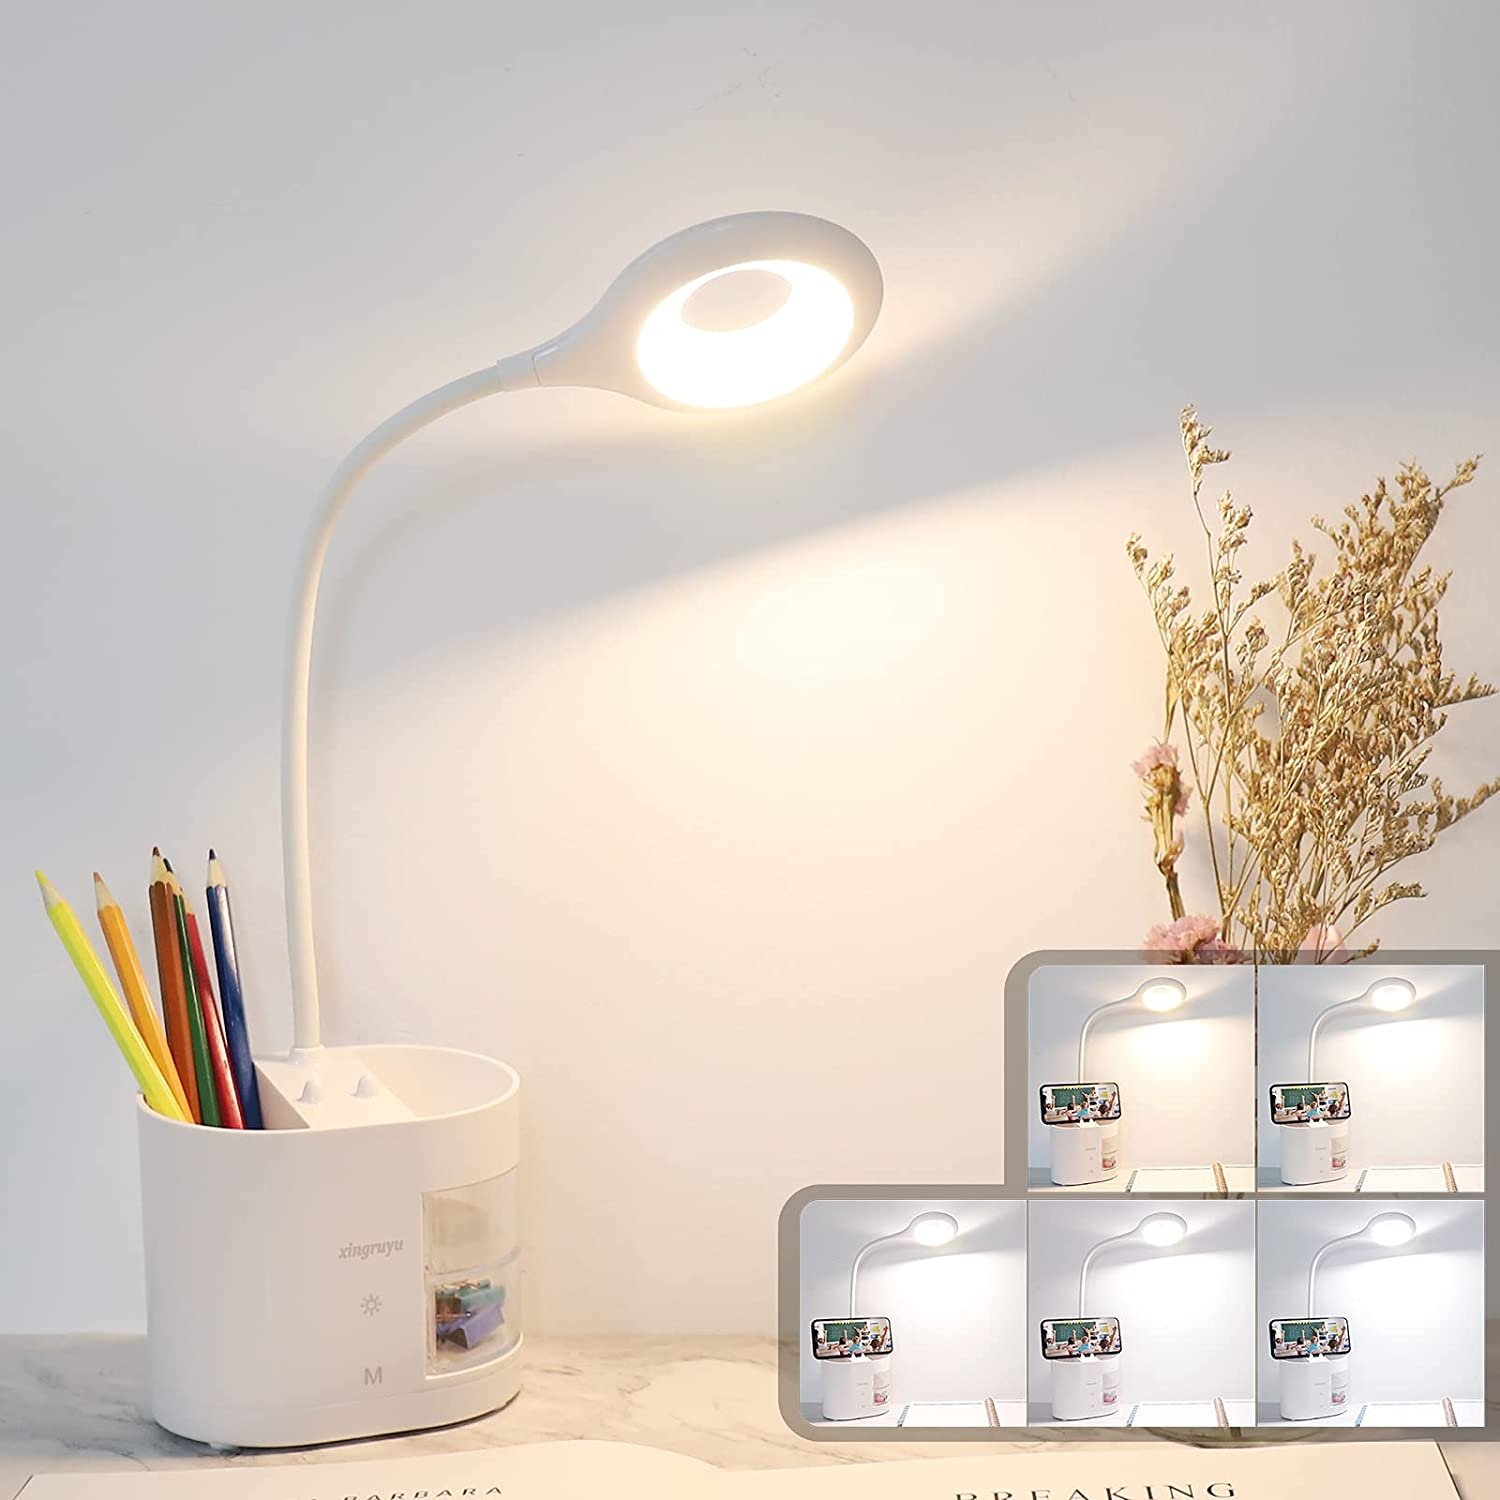 LED Desk Max 62% OFF Overseas parallel import regular item Lamp Xingruyu 28 5 LEDs M Color Rechargeable